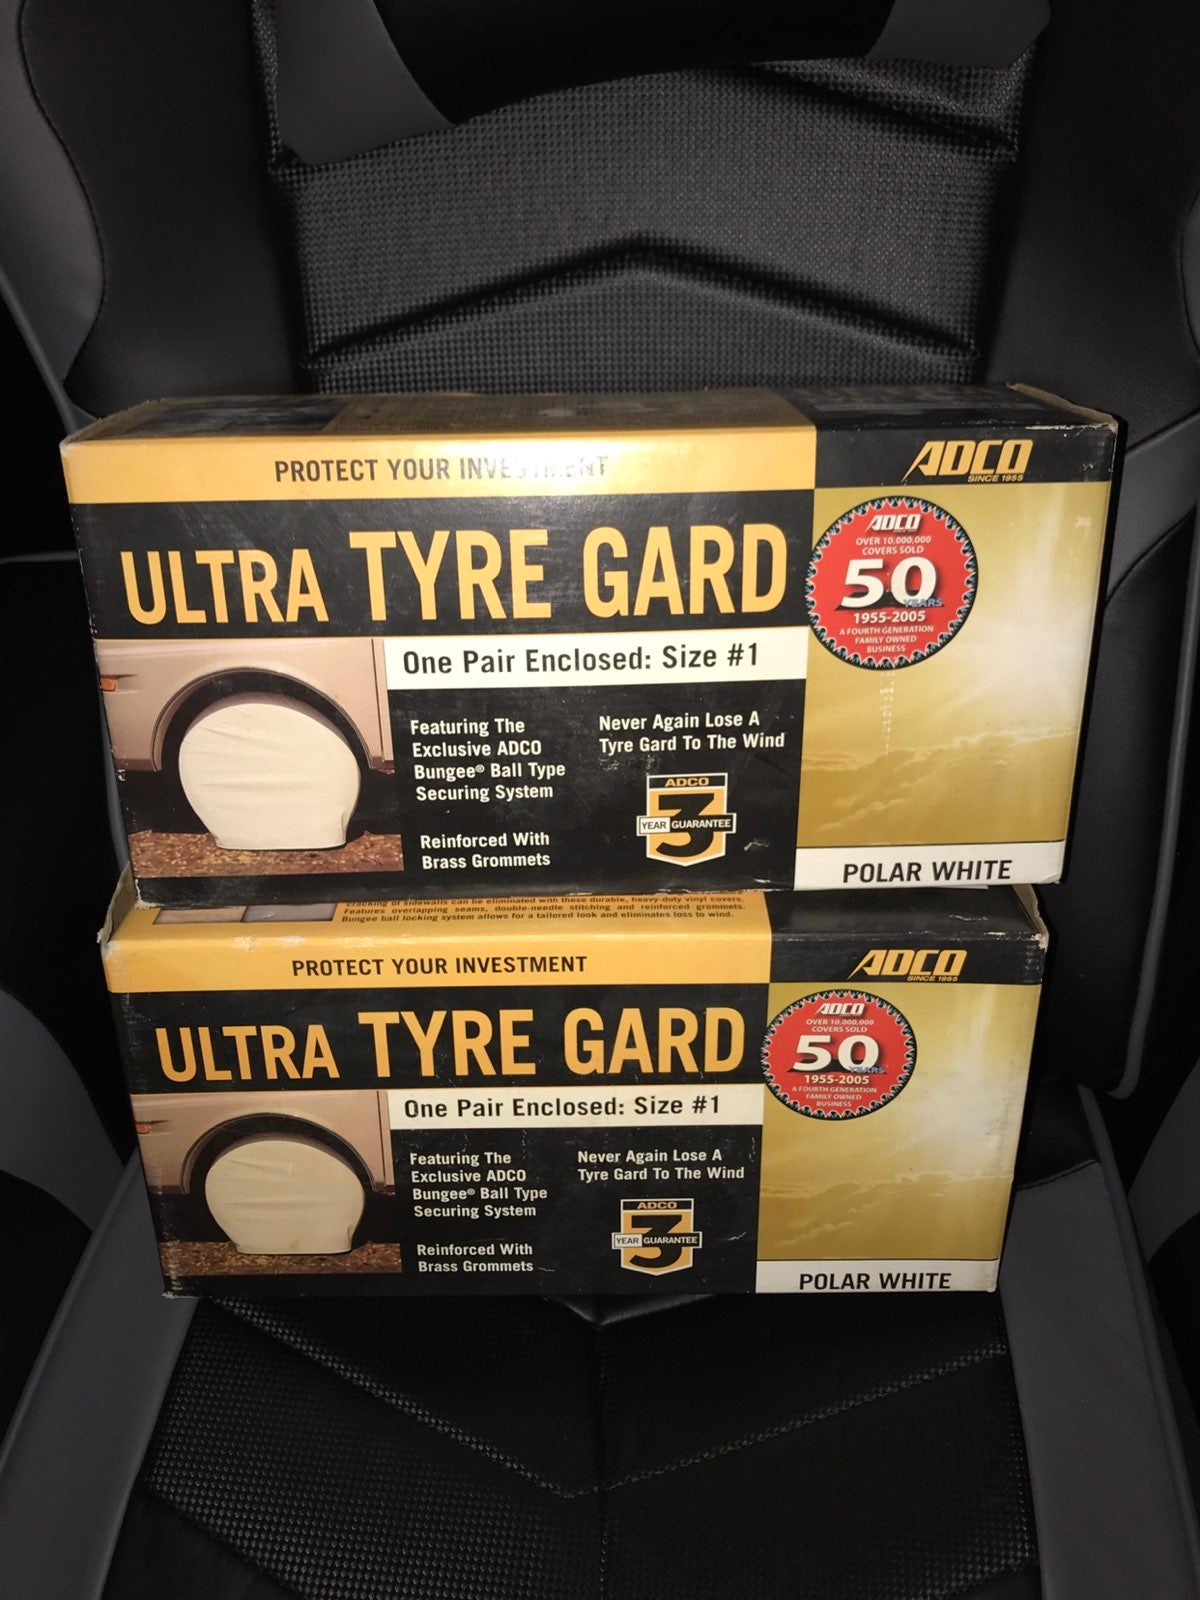 TWO PAIR 3591 Adco Ultra Tyre Gard